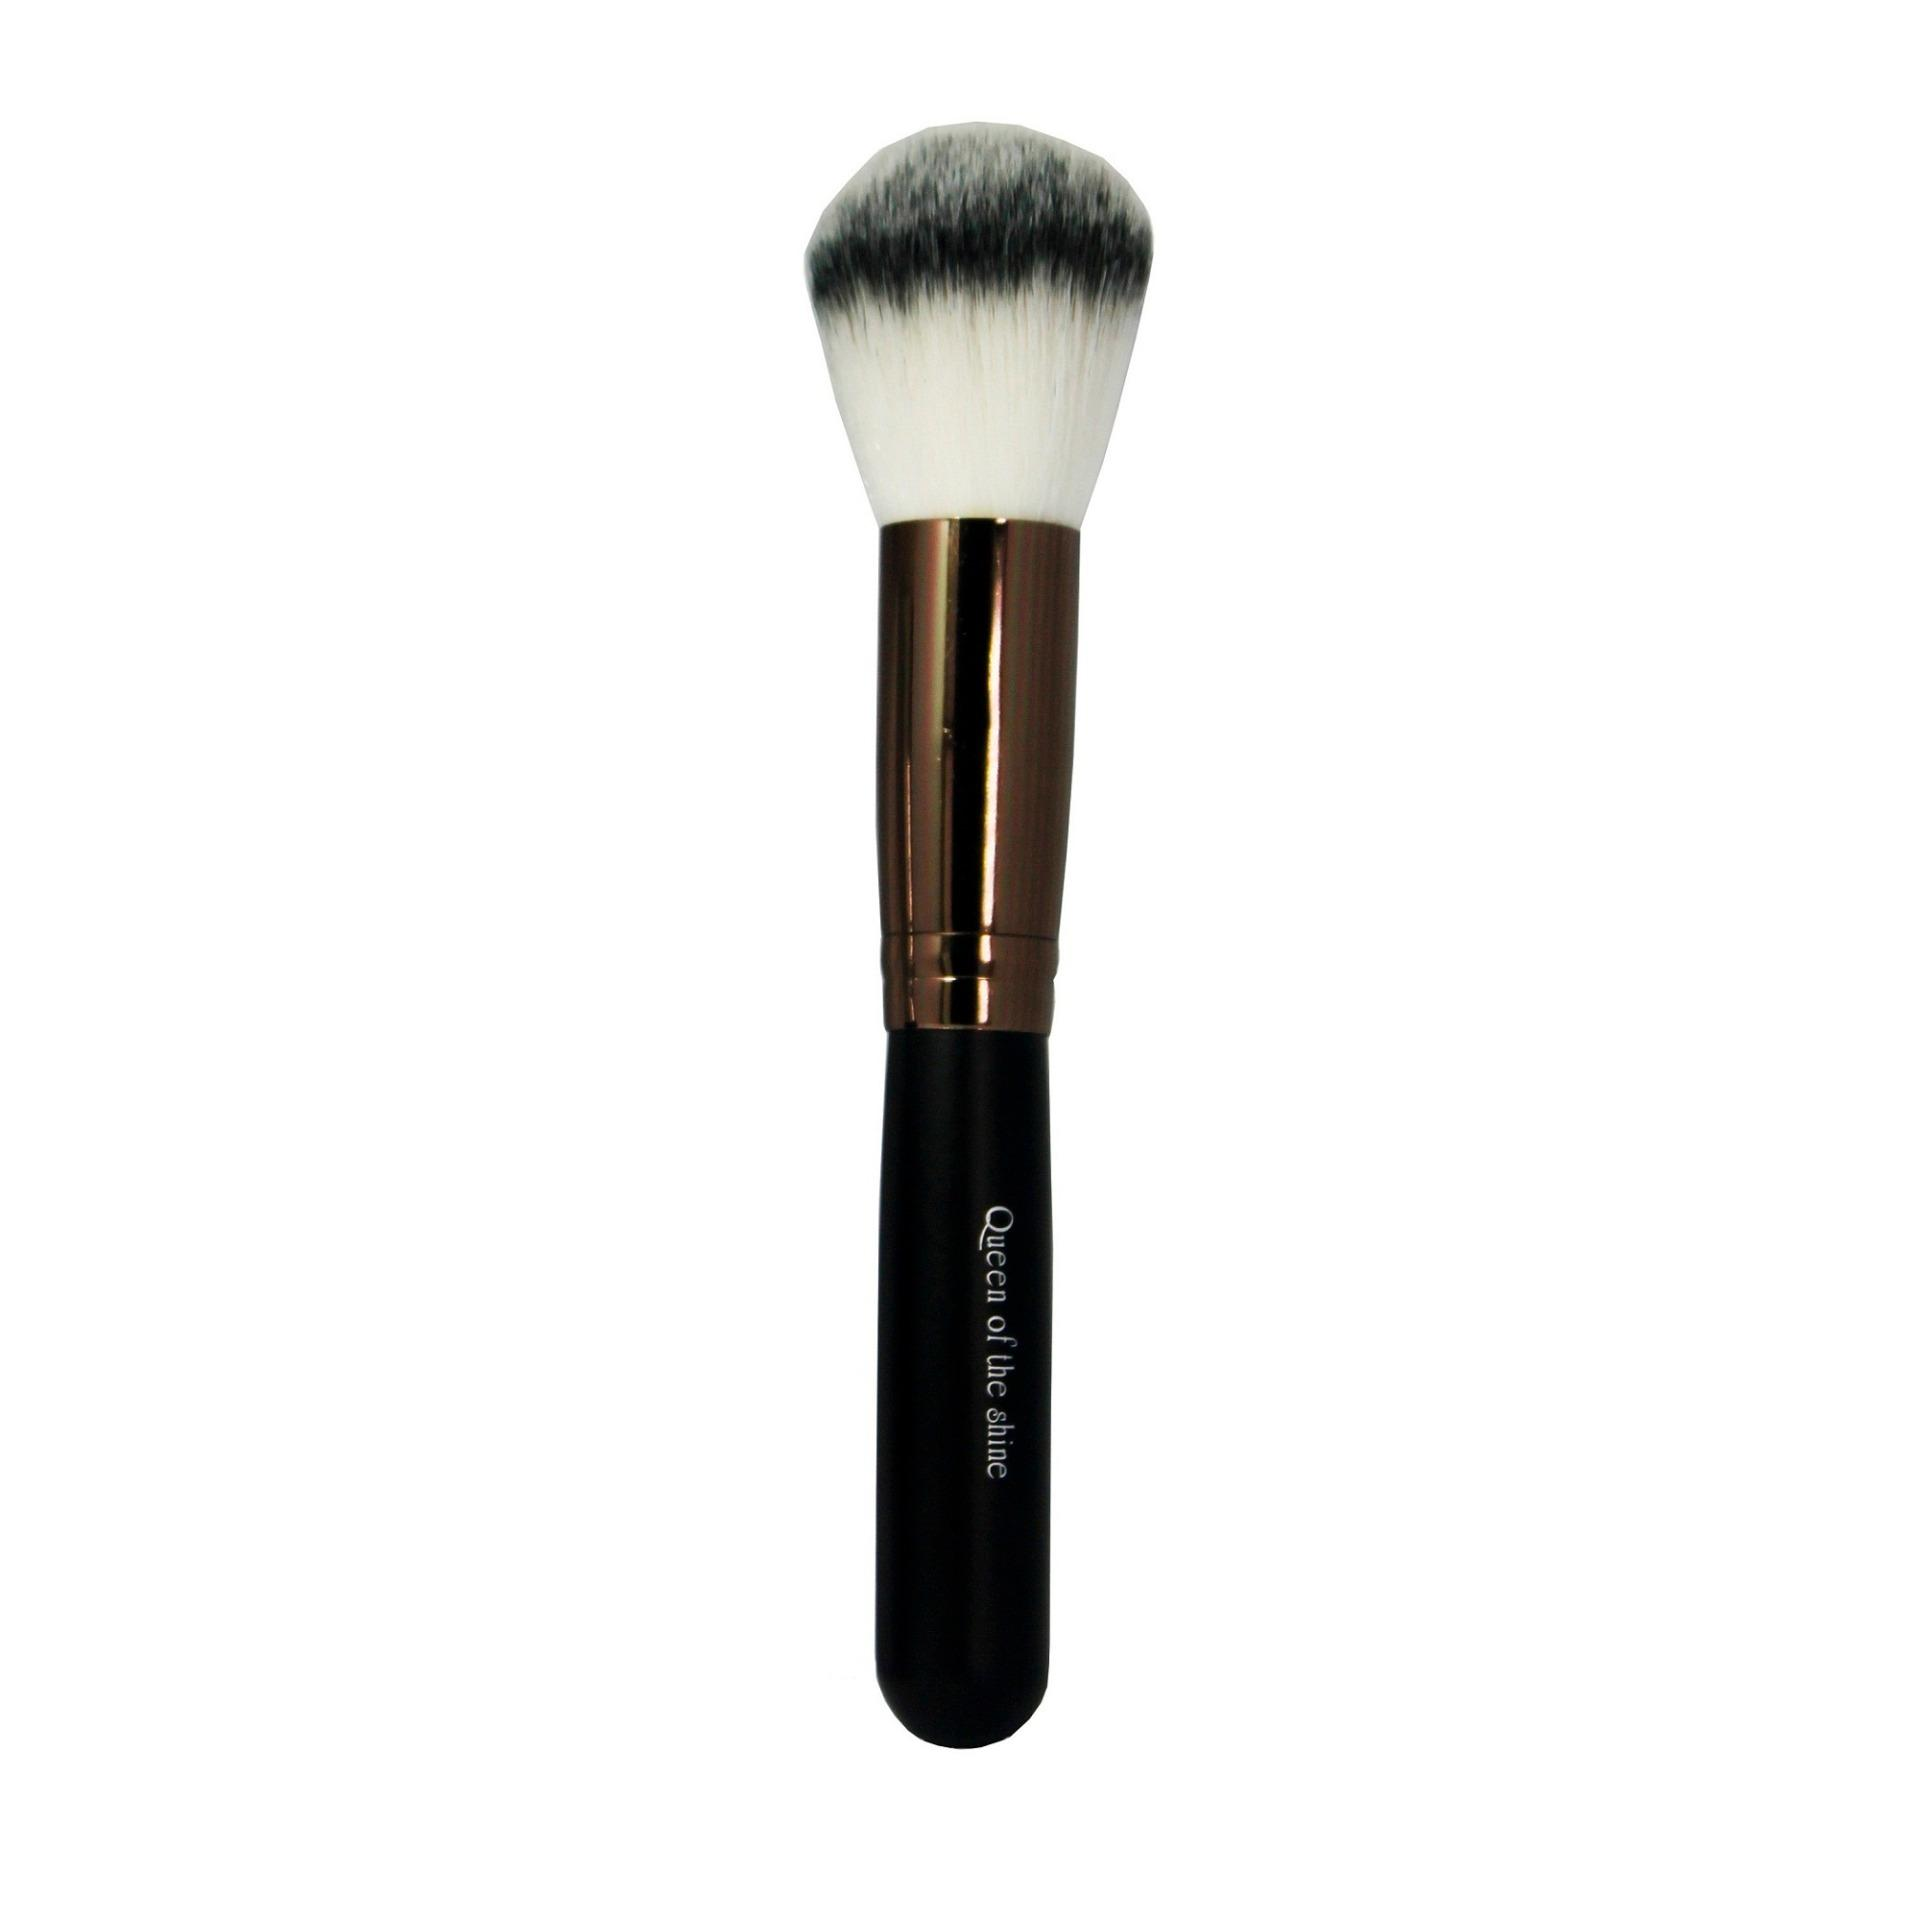 ... Queen Of The Shine Kuas Make Up / Powder Brush - Bronze ...